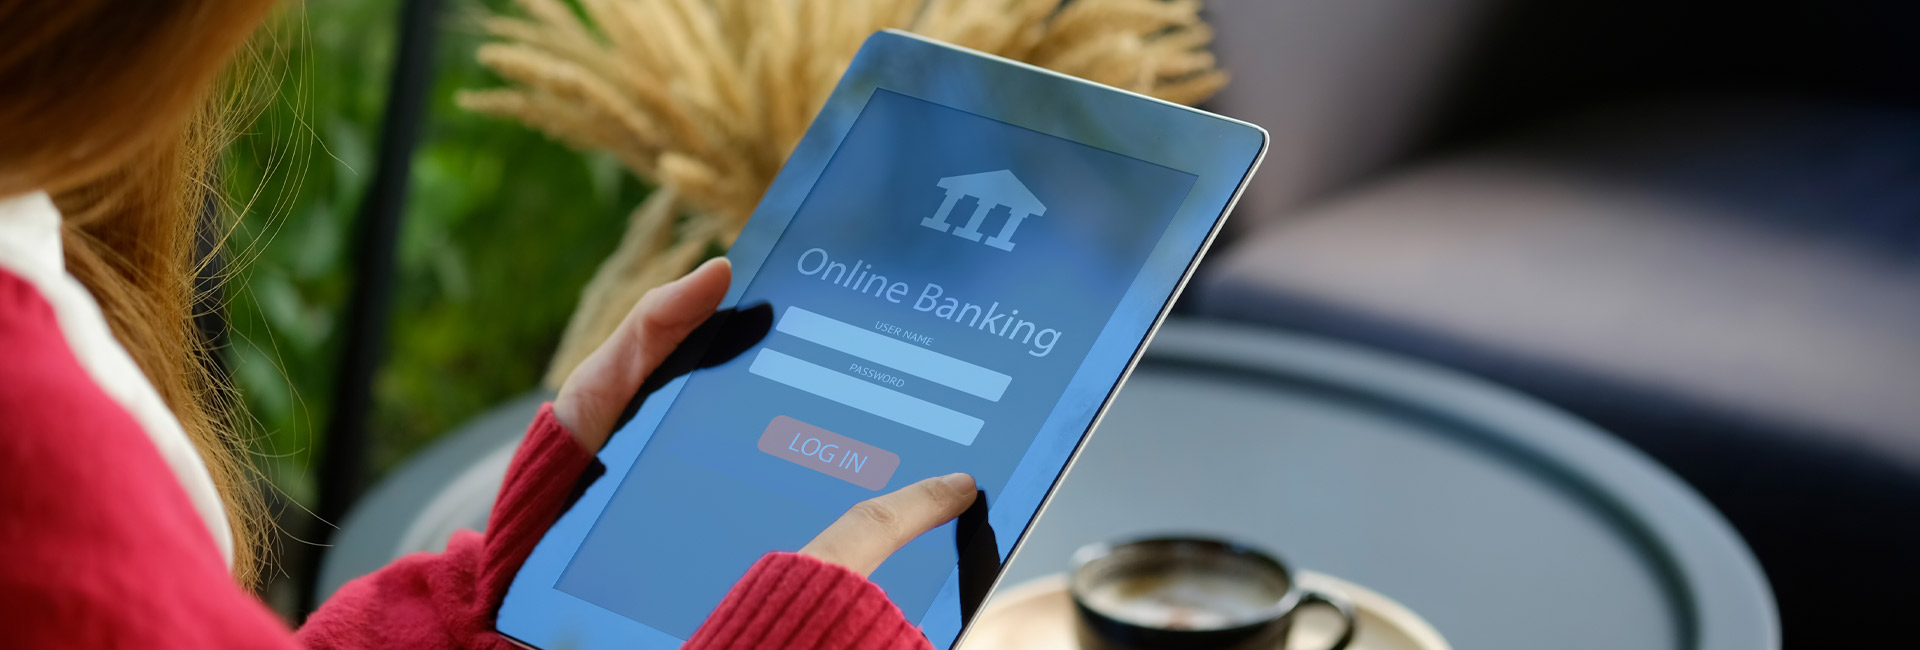 Banking, payments, open banking